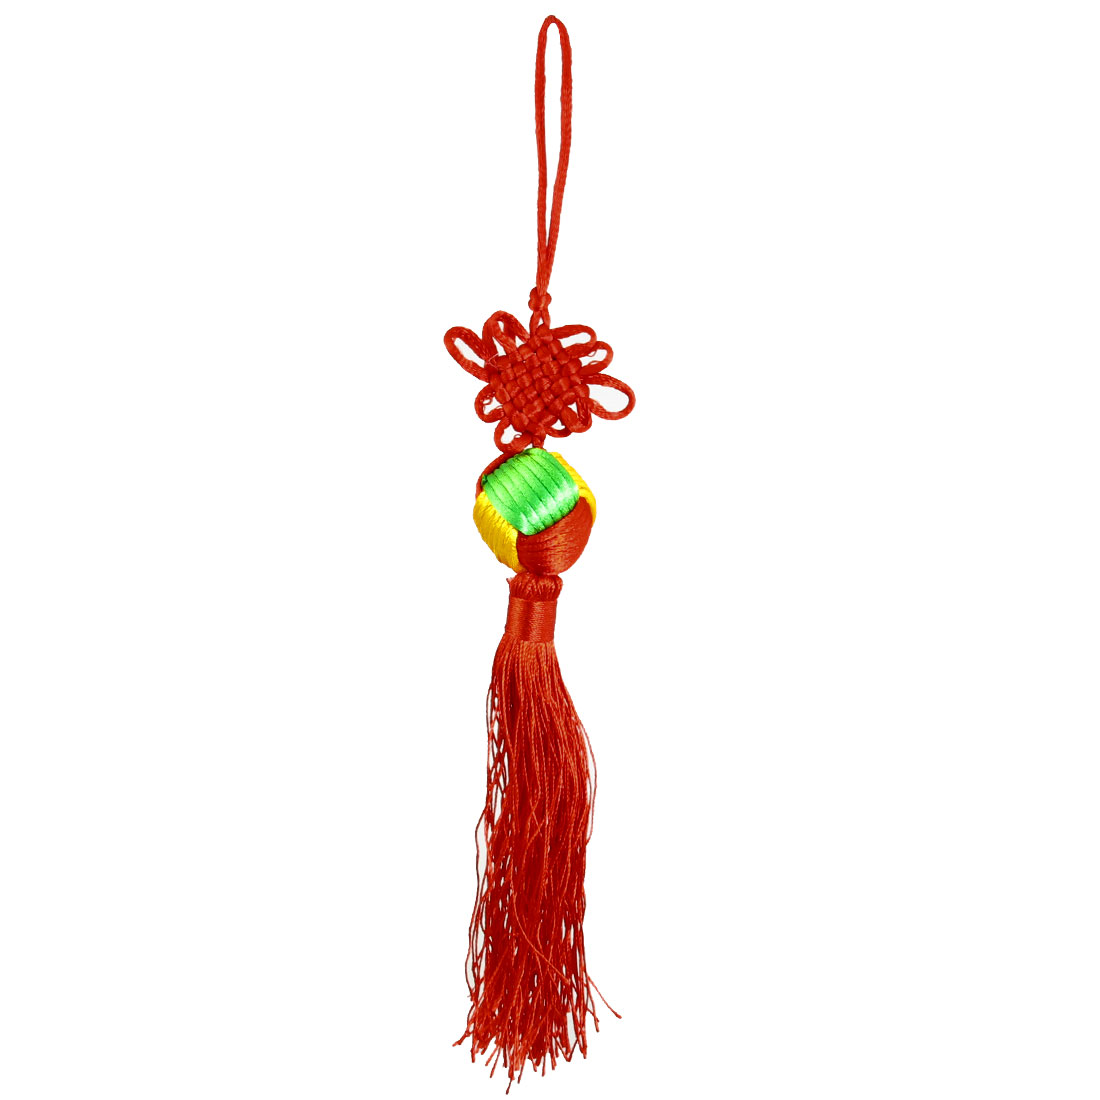 Tricolor Ball Tassels Detail Chinese Knot Vehicles Festival Ornament Red